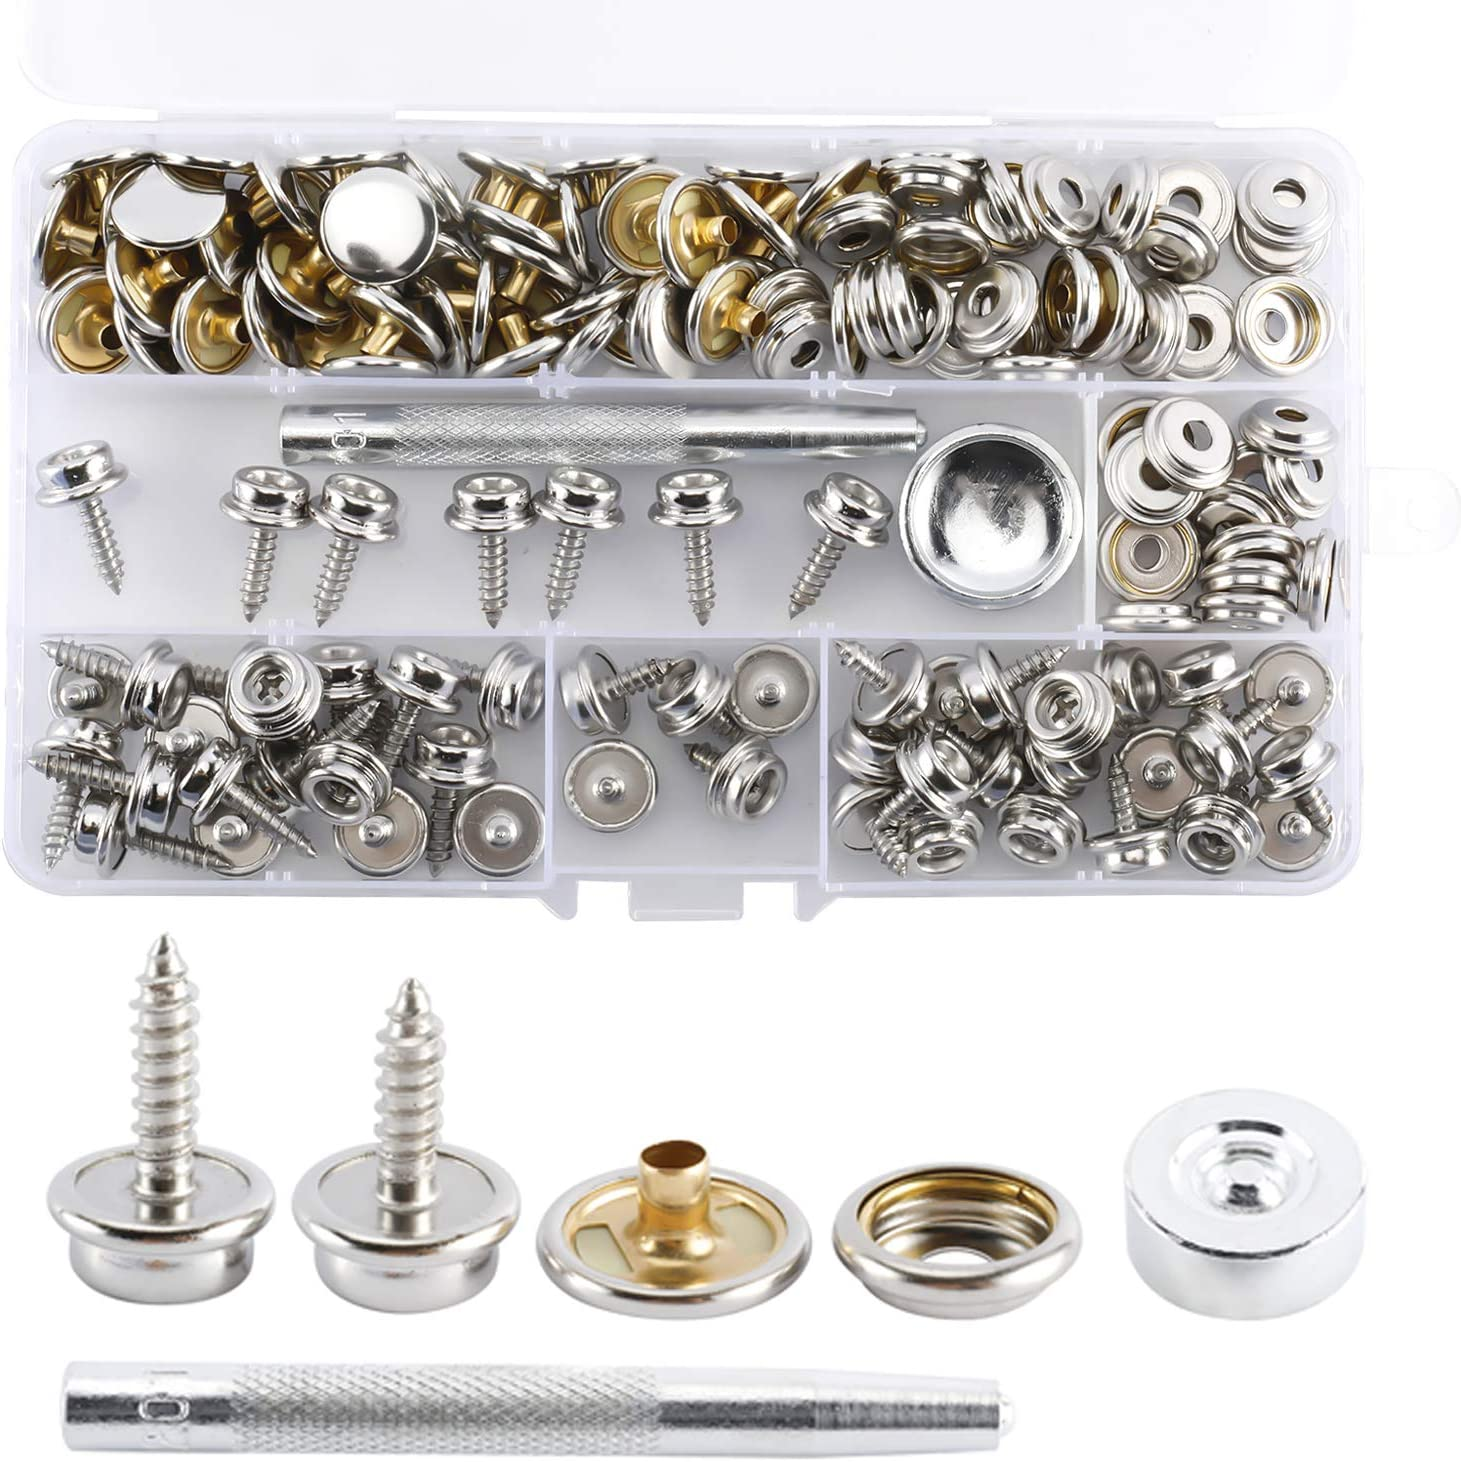 NovelBee 150 Pieces Boat Cover Snap Screw Kits Tool with Stainless Steel Snap Button Socket Screws and Setting Tool